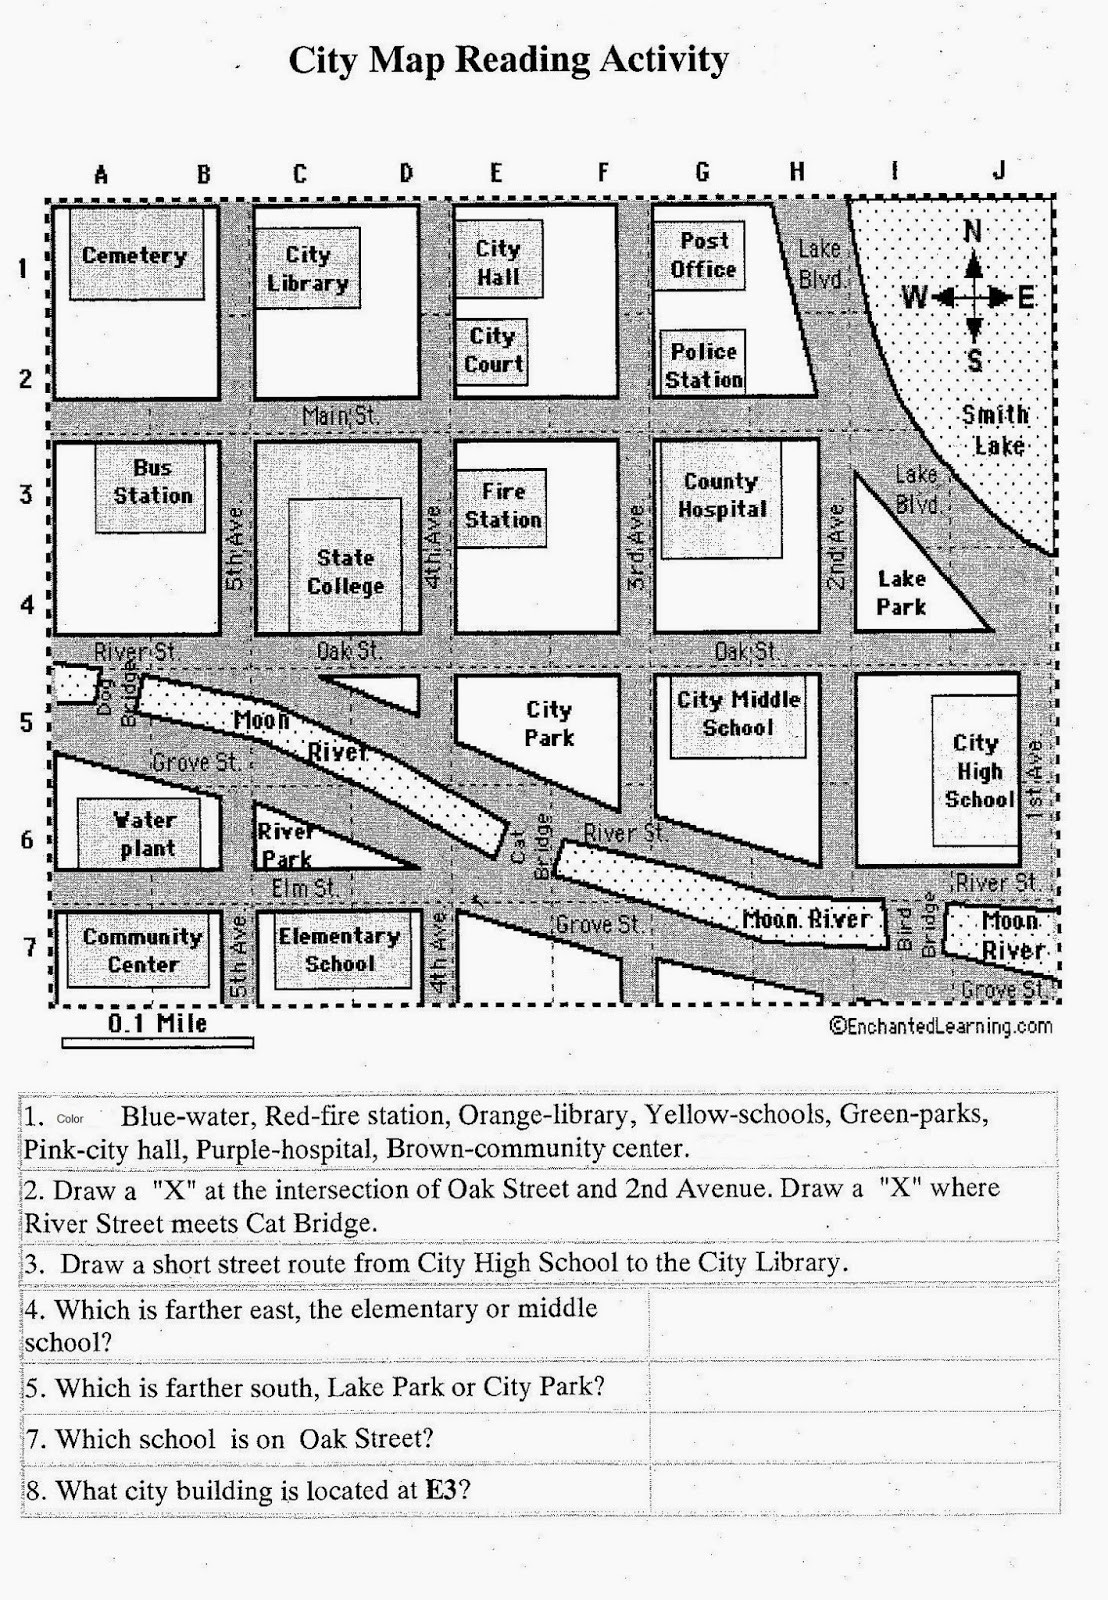 Map Skills Worksheets Middle School Rachael S English Worksheets Map Reading Activity for 7th Grade